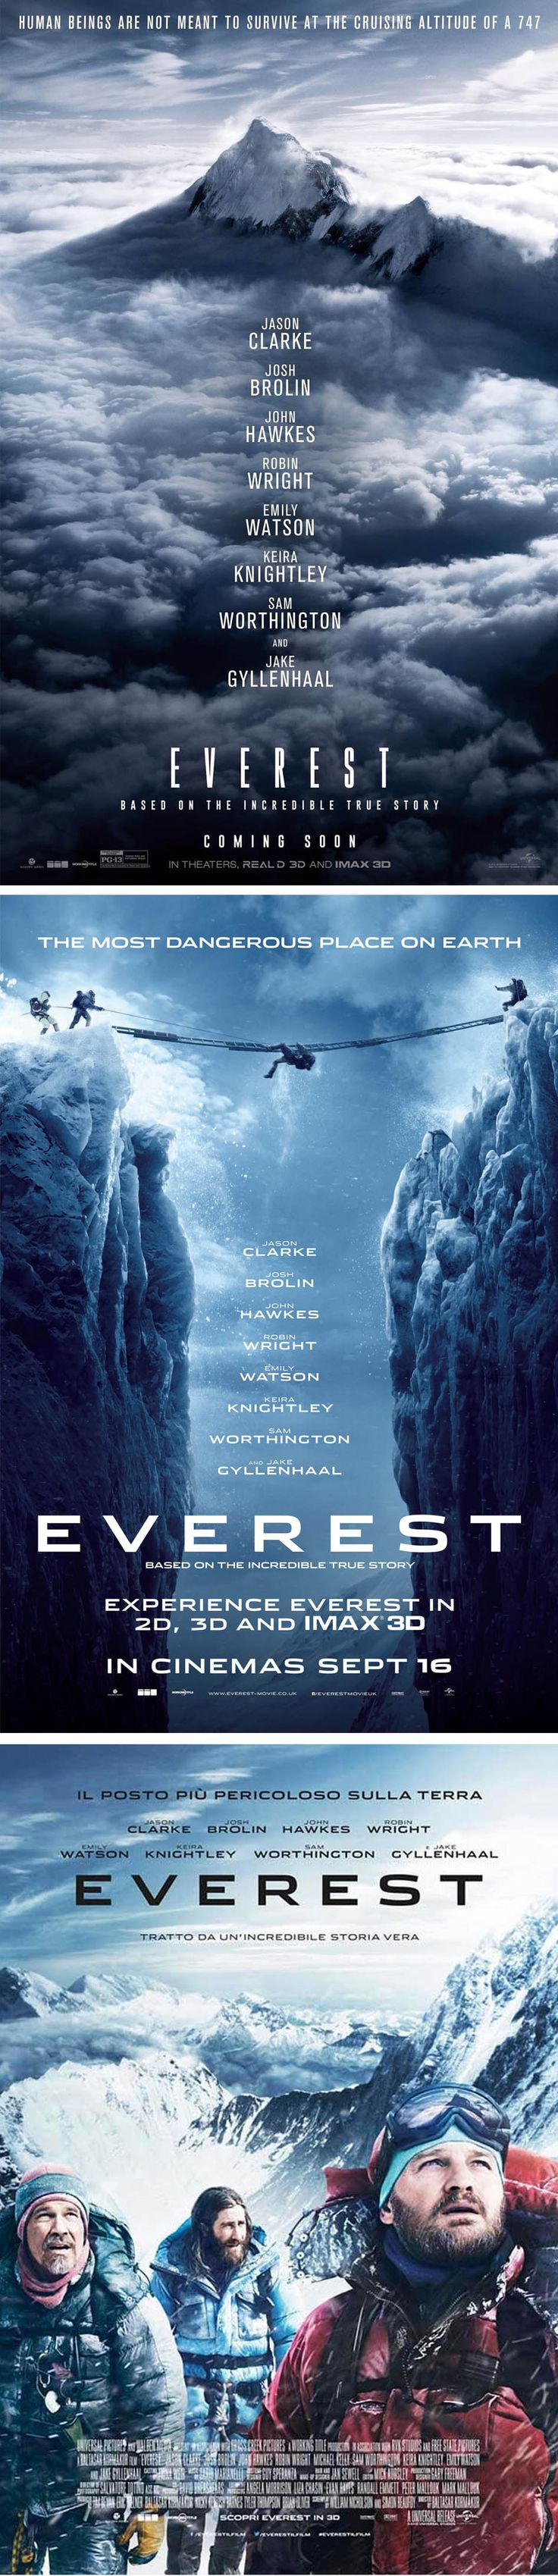 best cine images on Pinterest  Movie posters Good movies and